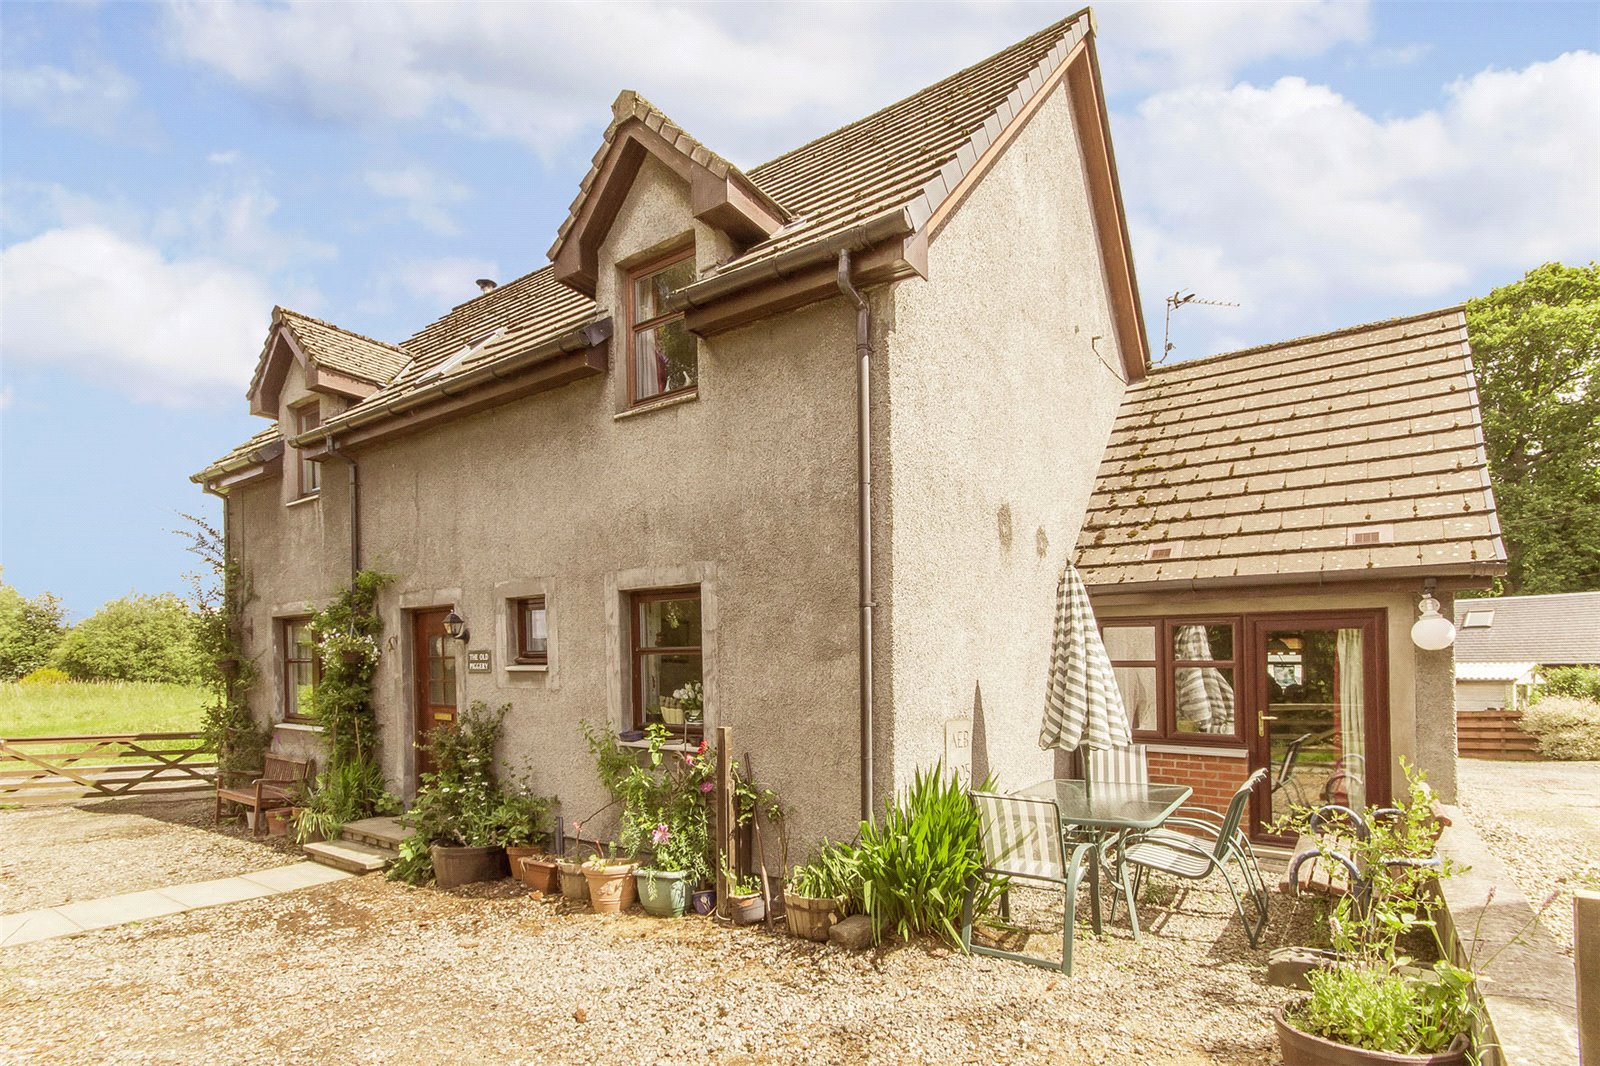 Former Piggery transformed into beautiful family home